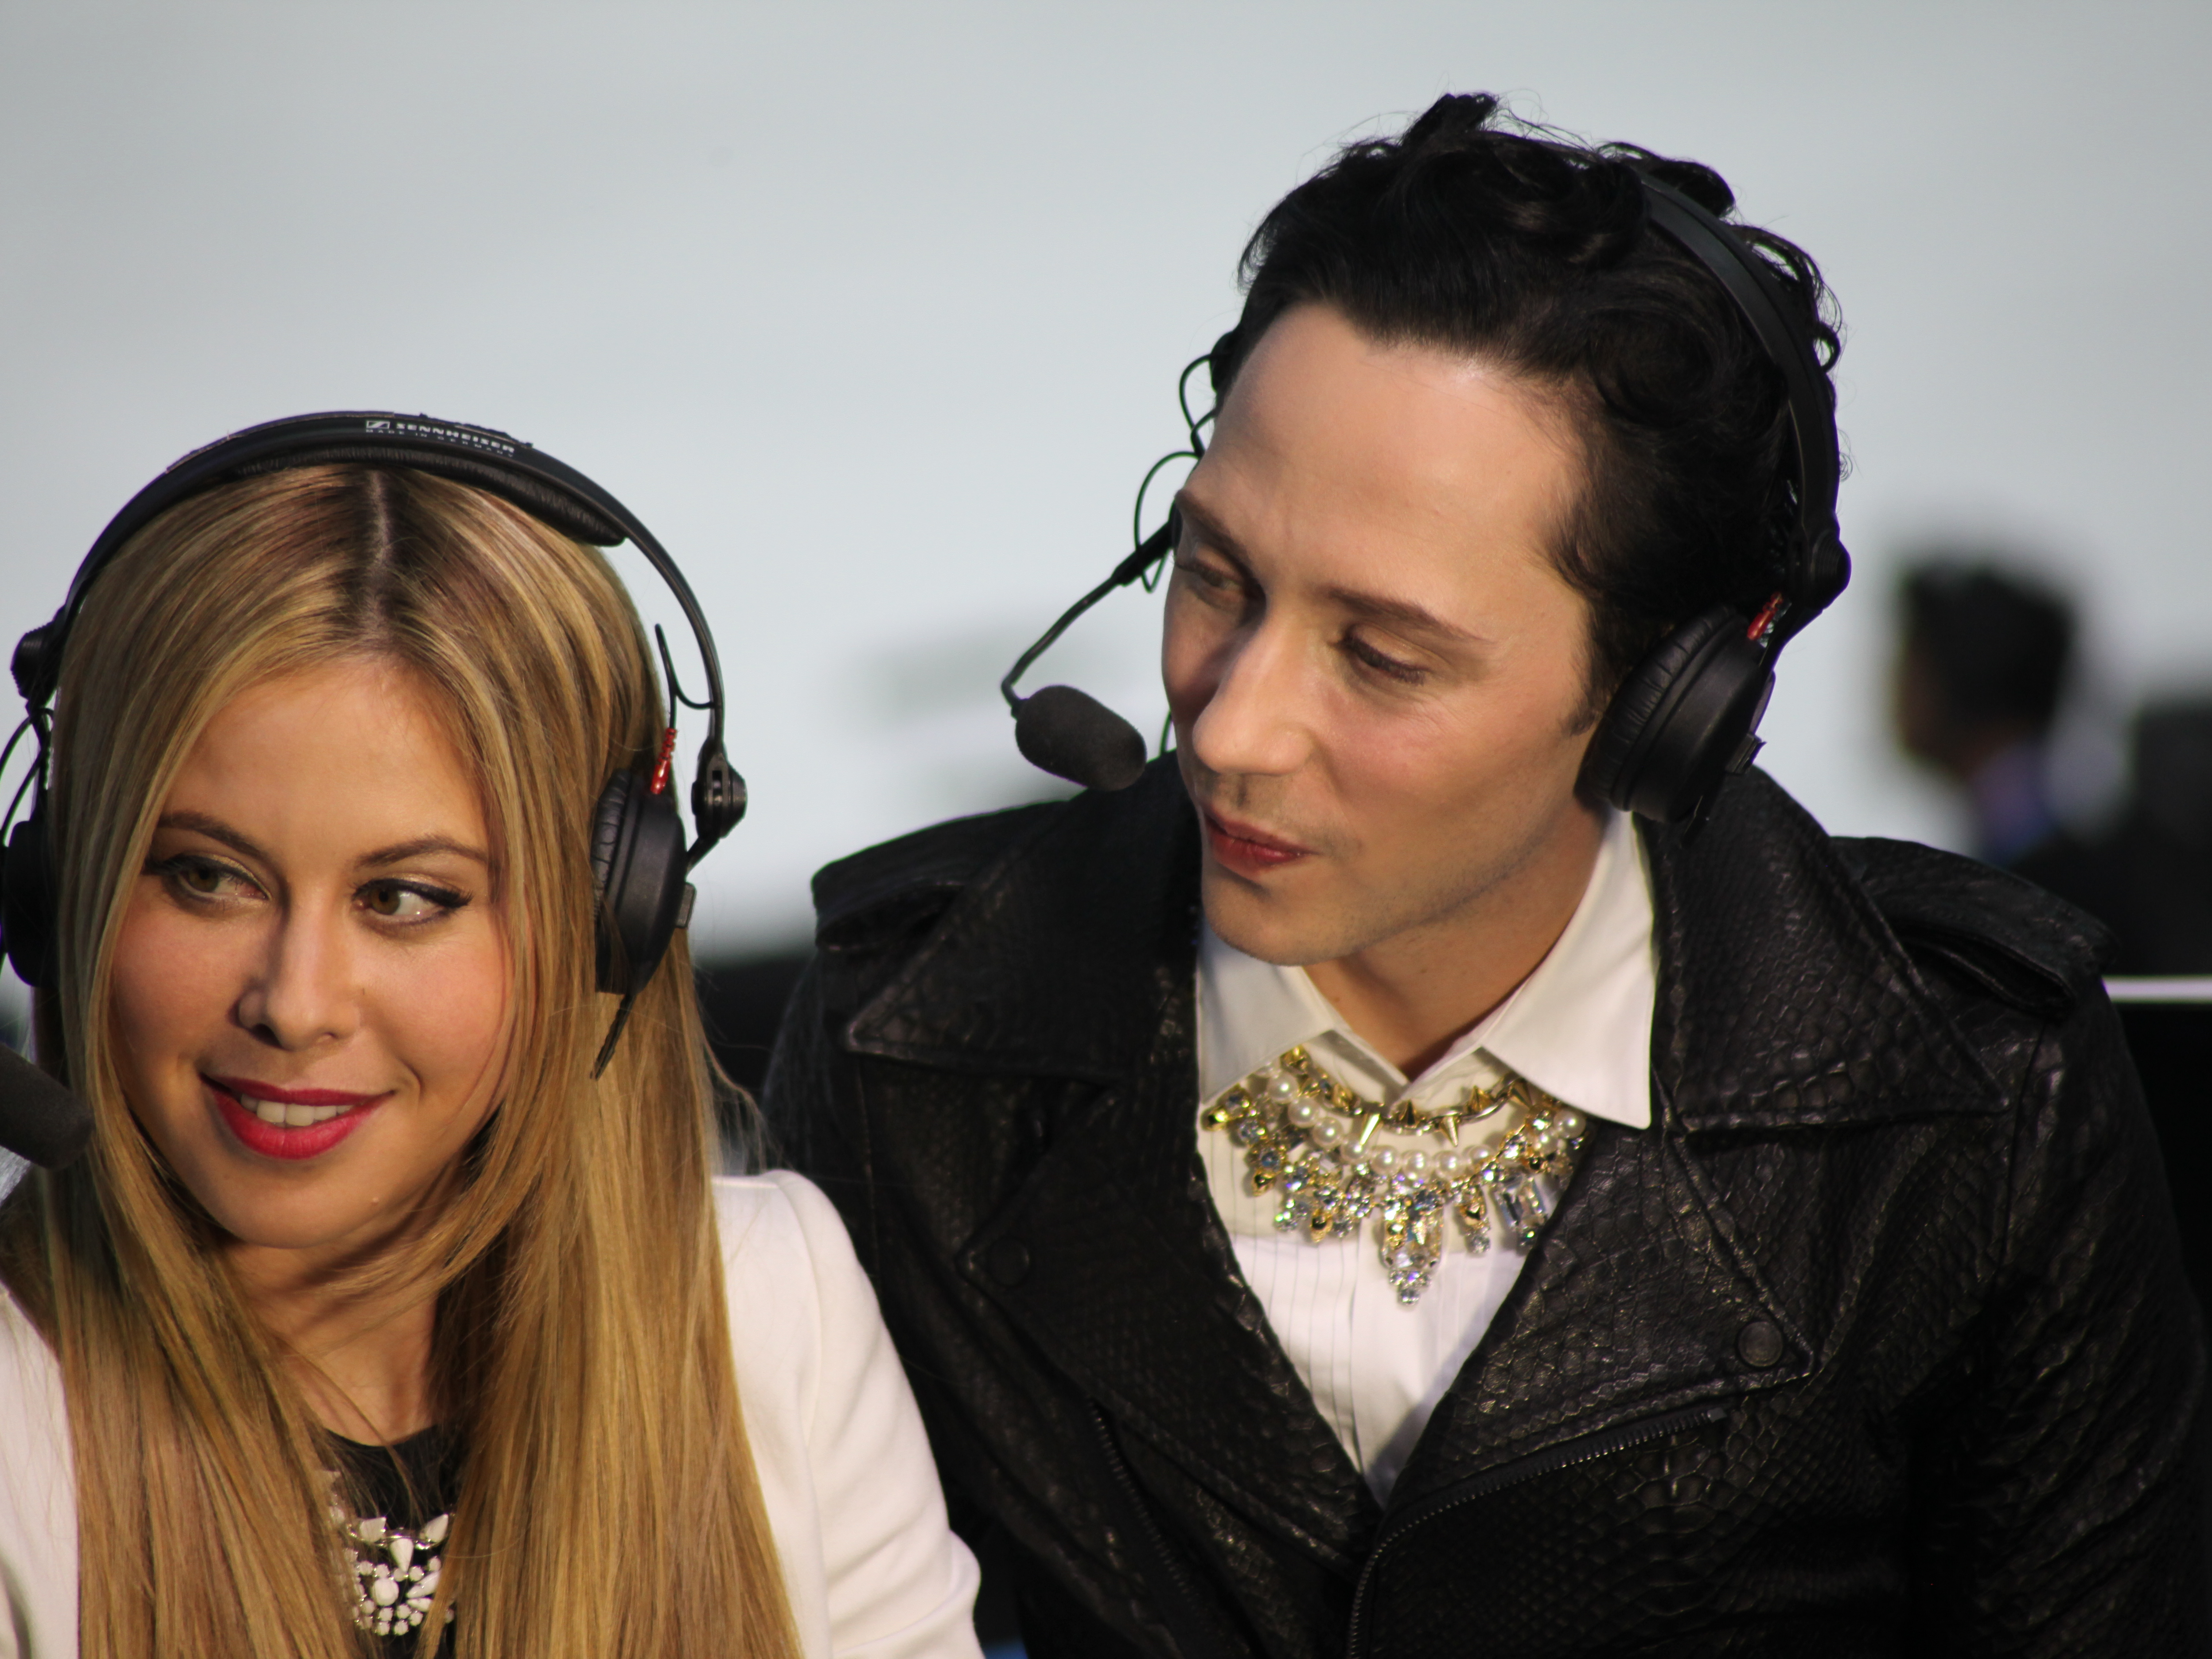 Figure skater Johnny Weir reporting at the Sochi 2014 Olympic Winter Games.